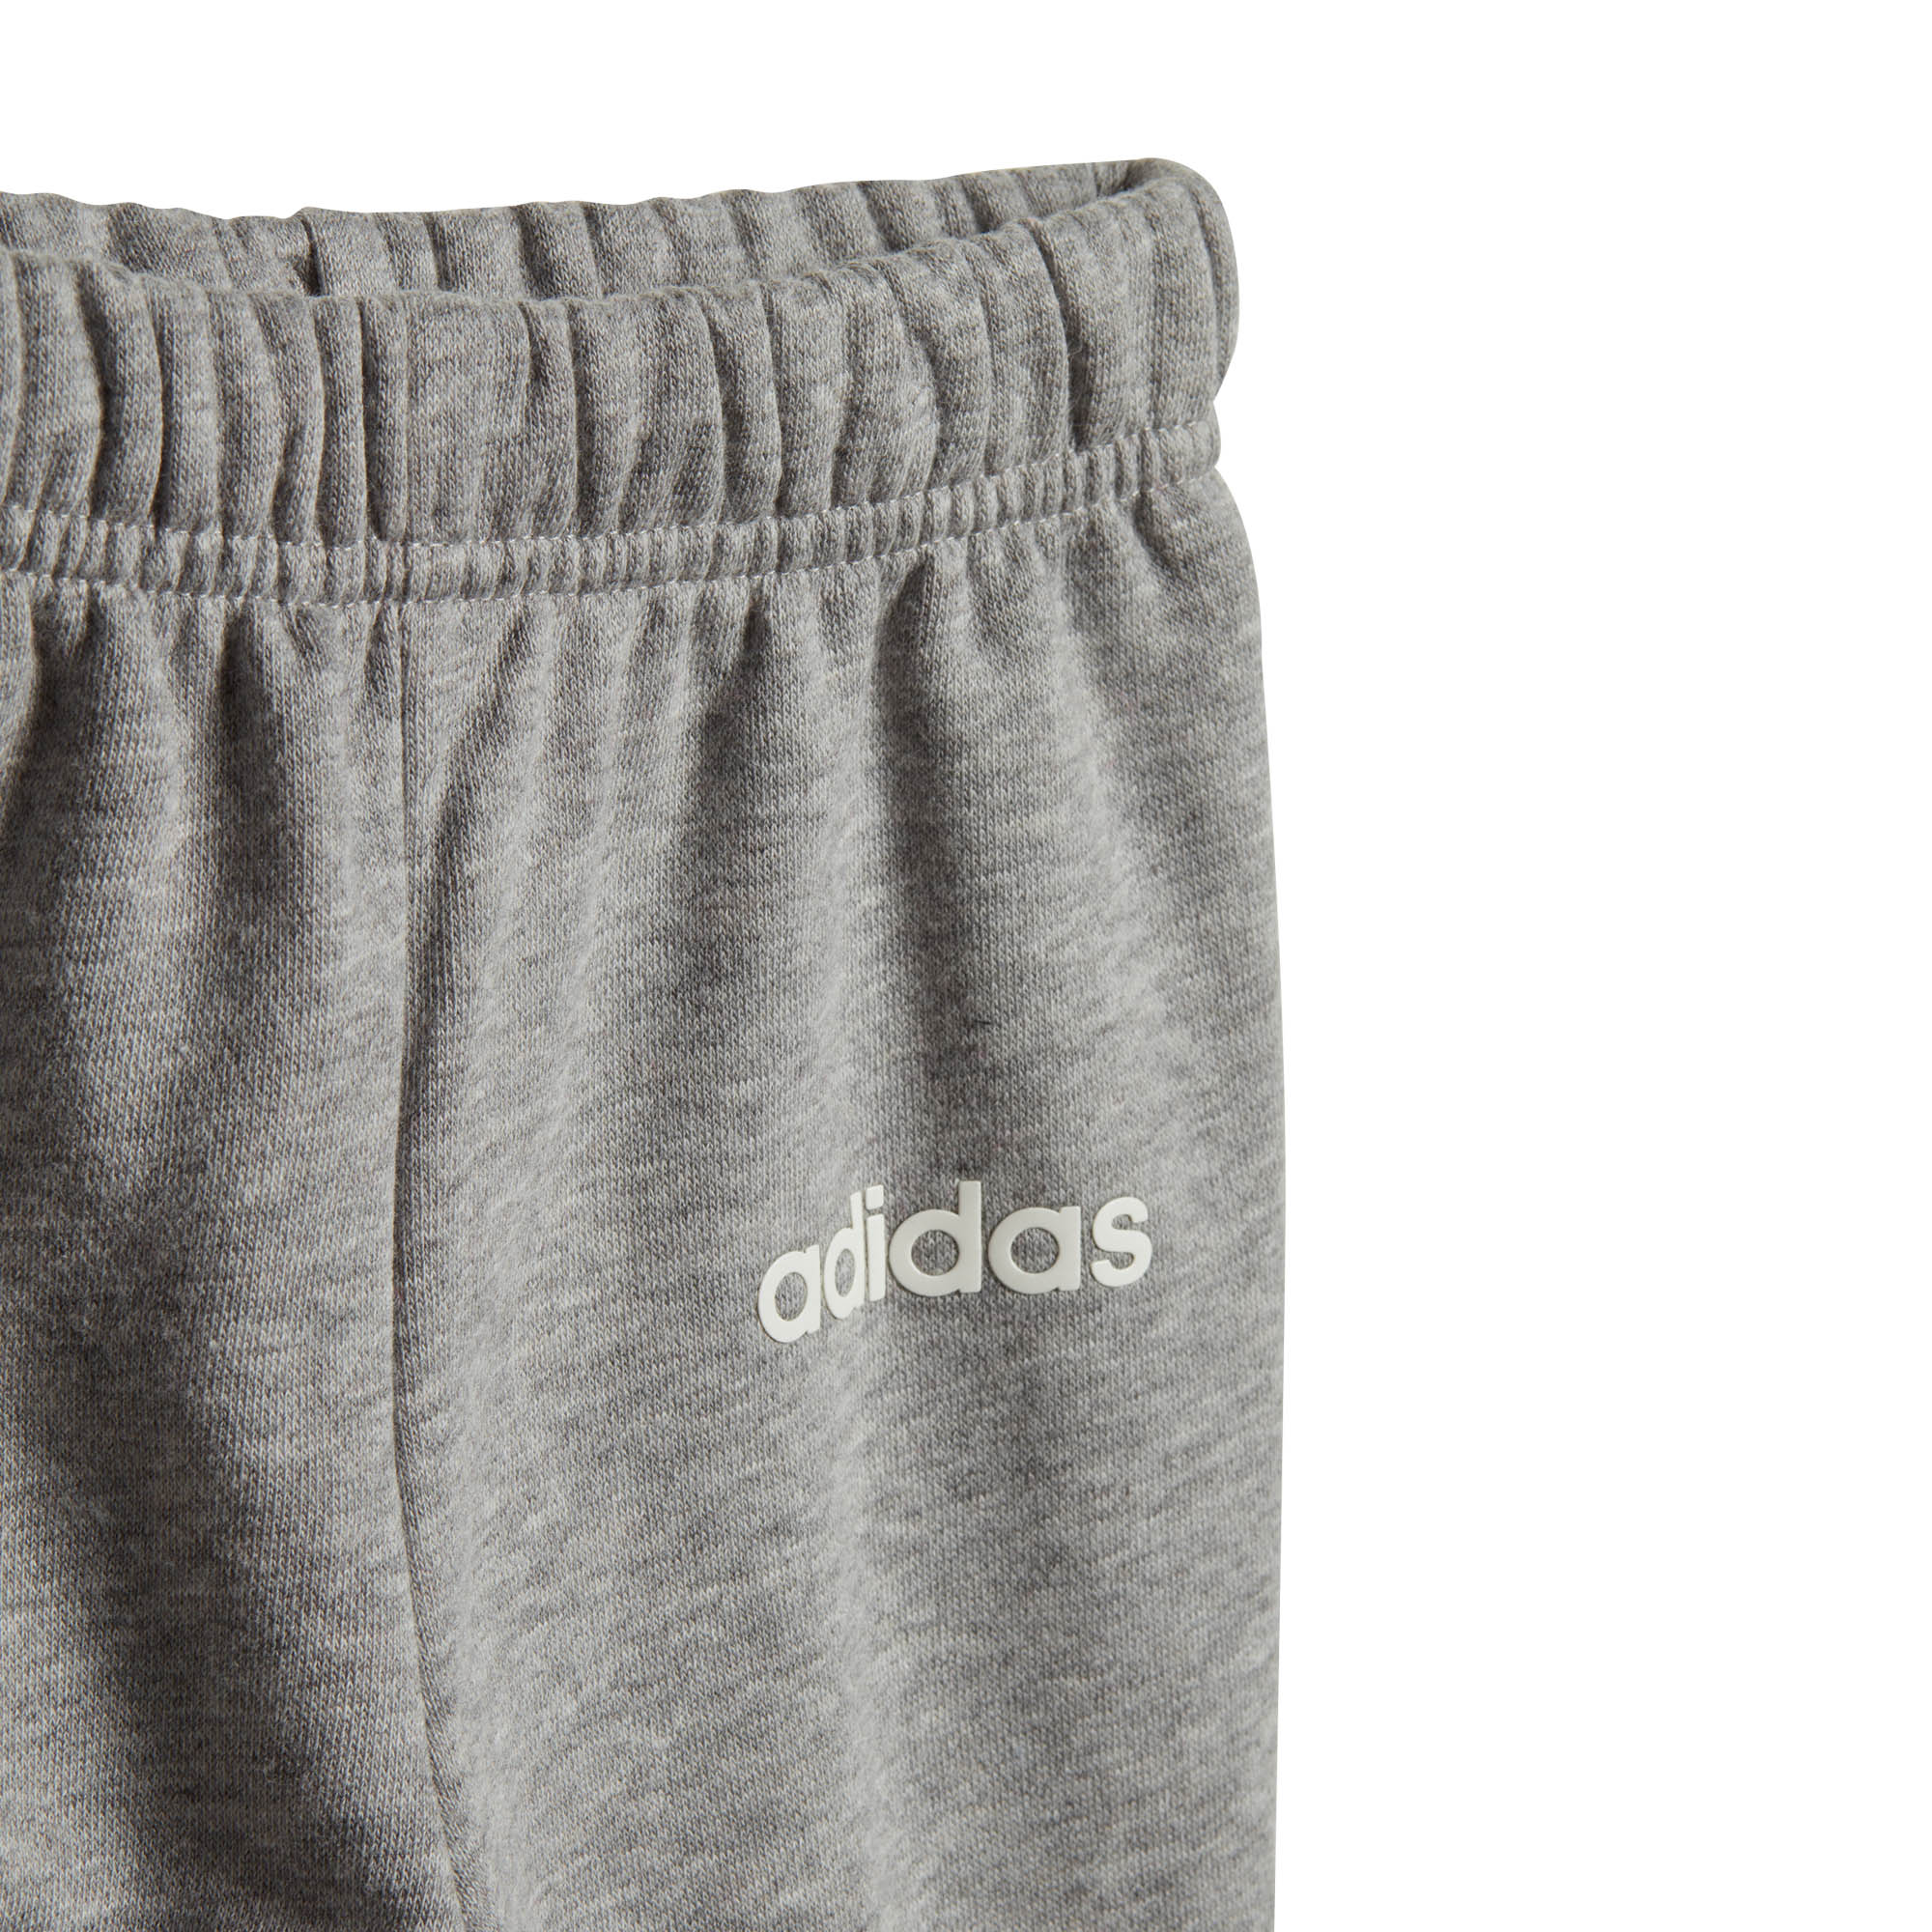 new styles 2f11b 8f522 ADIDAS-Lineare-Jogger-Infant-Toddler-Bambini-Set-Tuta-